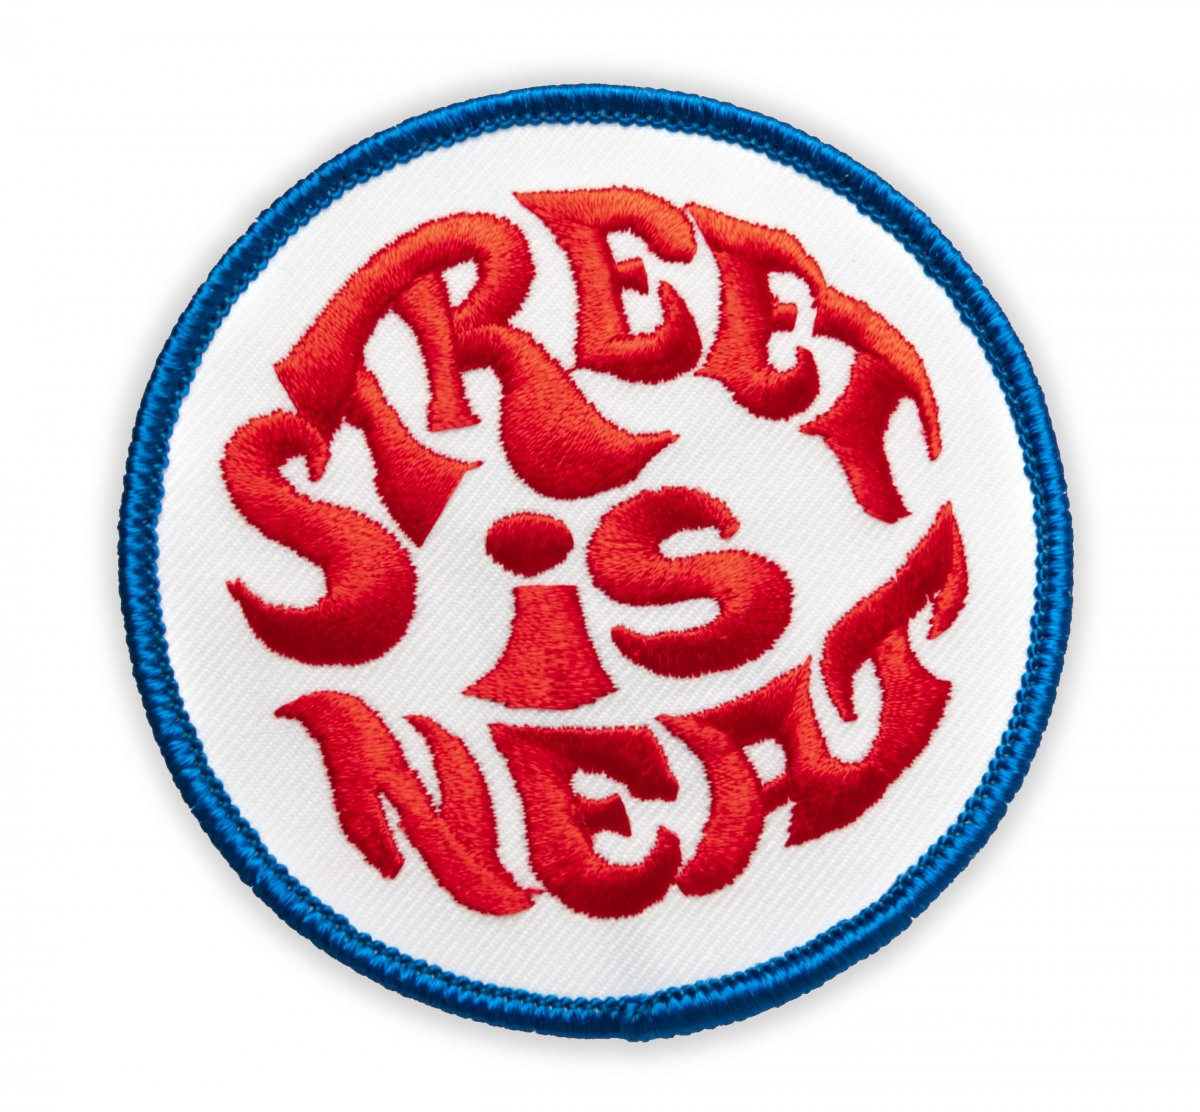 Street-is-Neat-Hat-Patch-6462-scaled.jpg